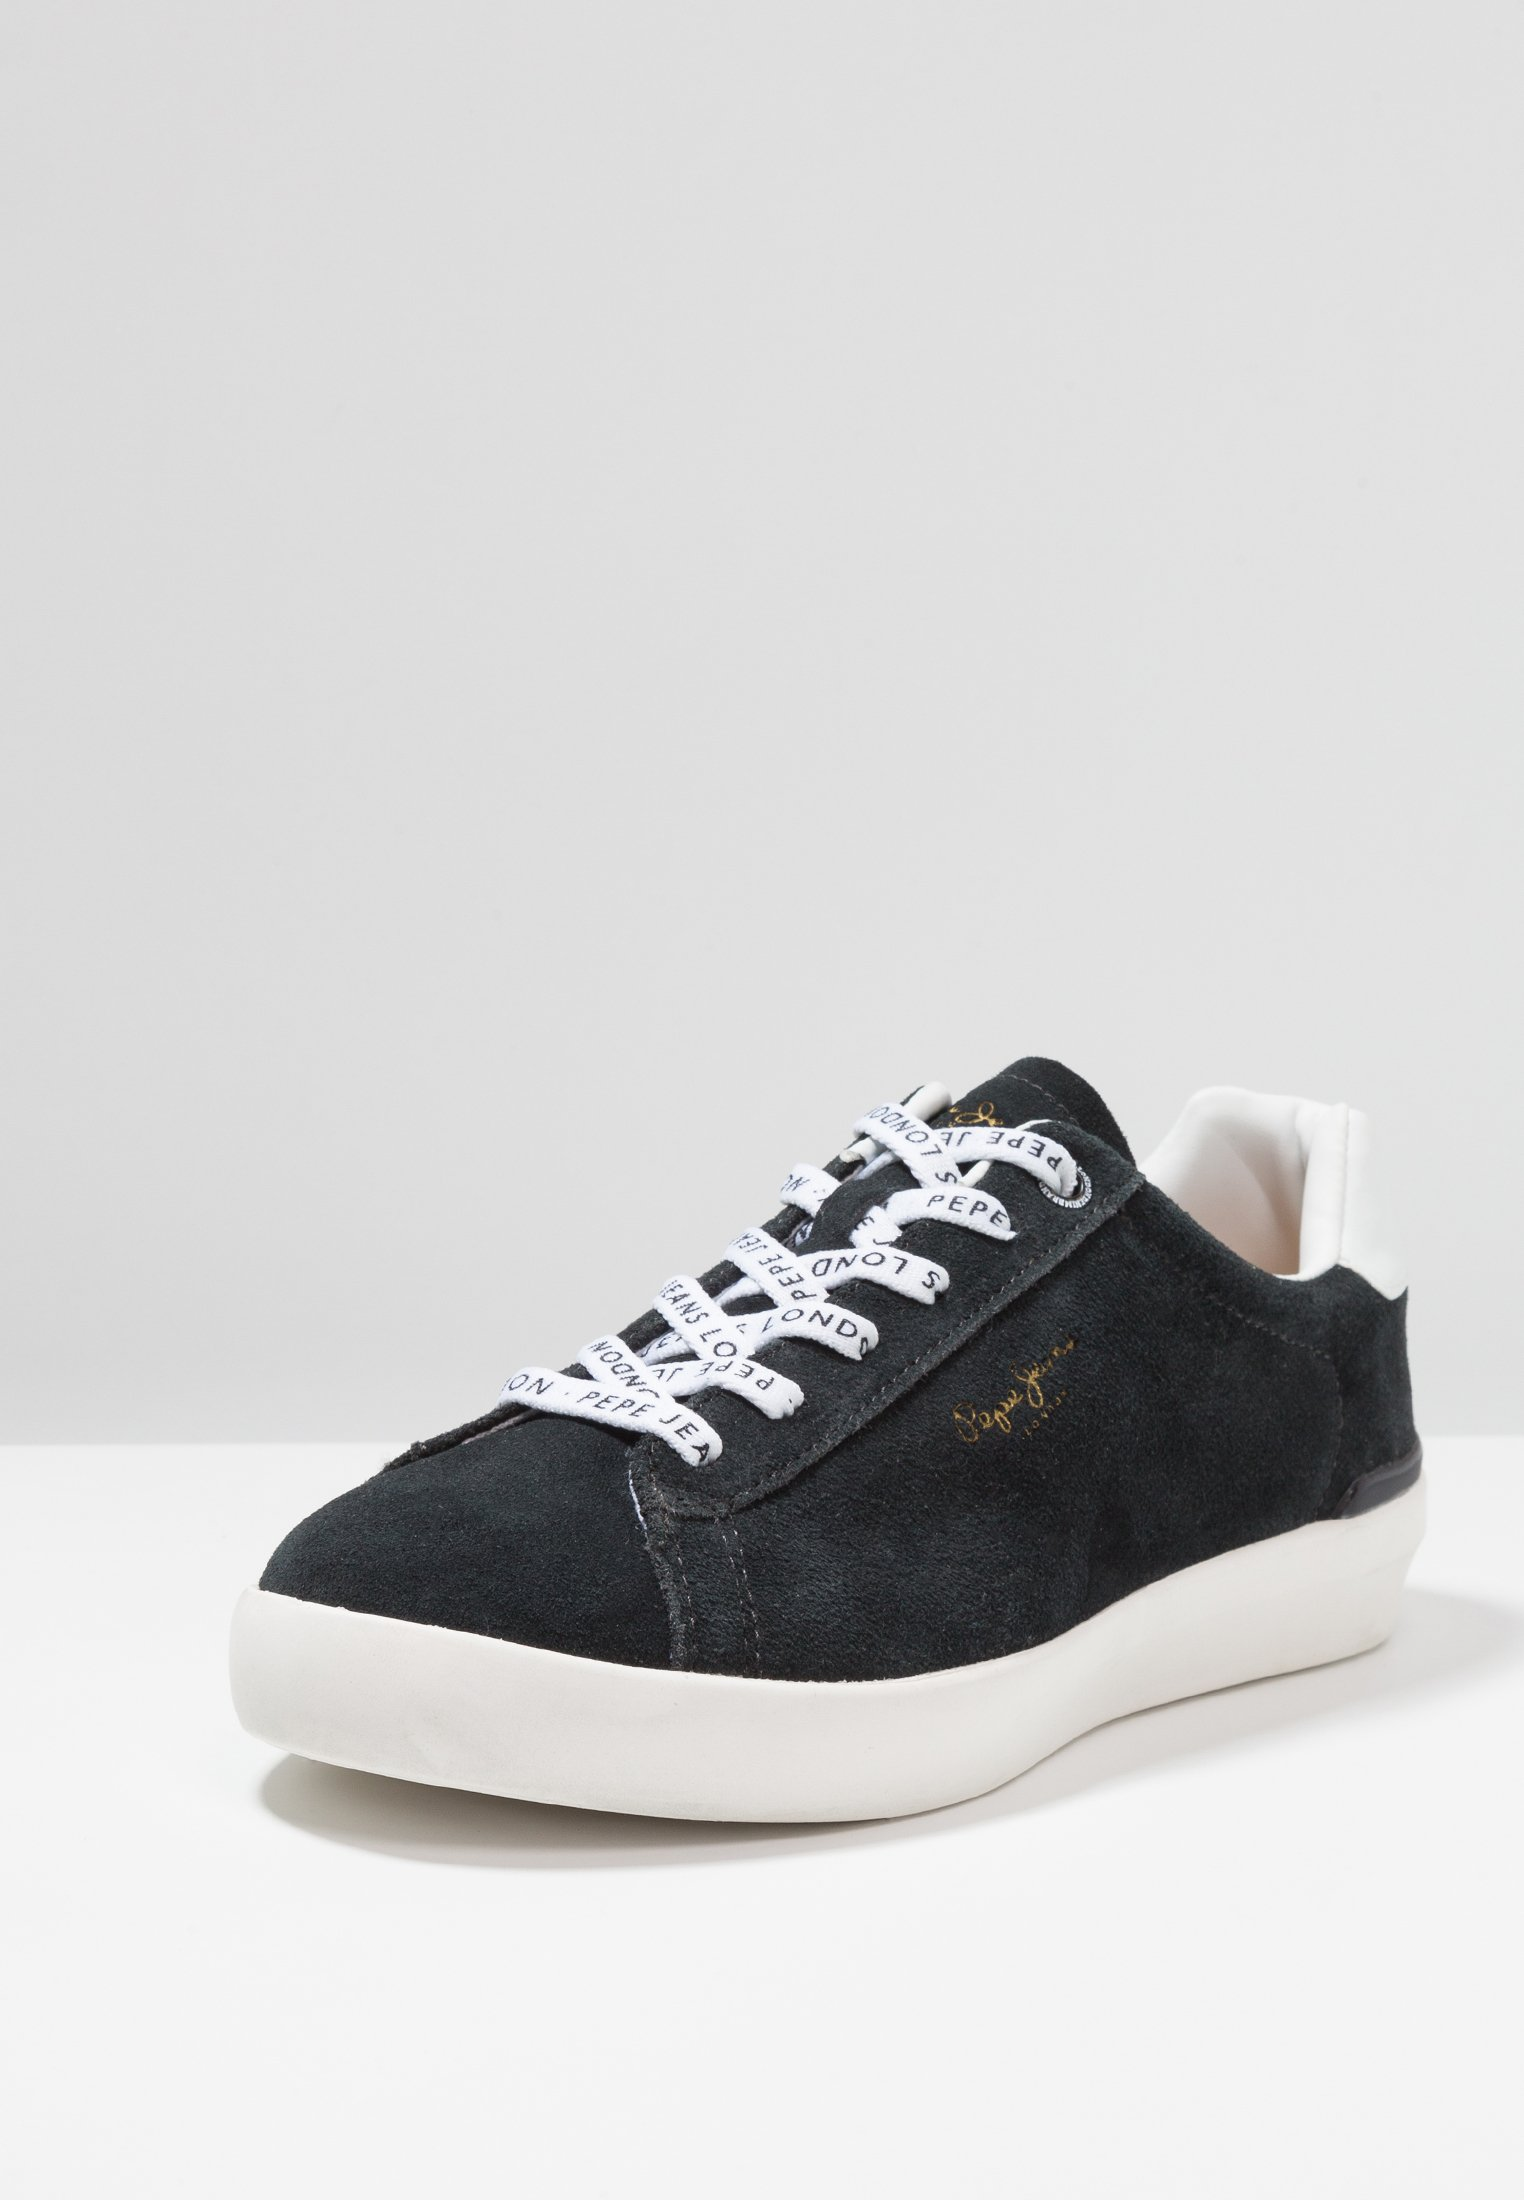 Pepe Jeans ROLAND - Baskets basses anthracite